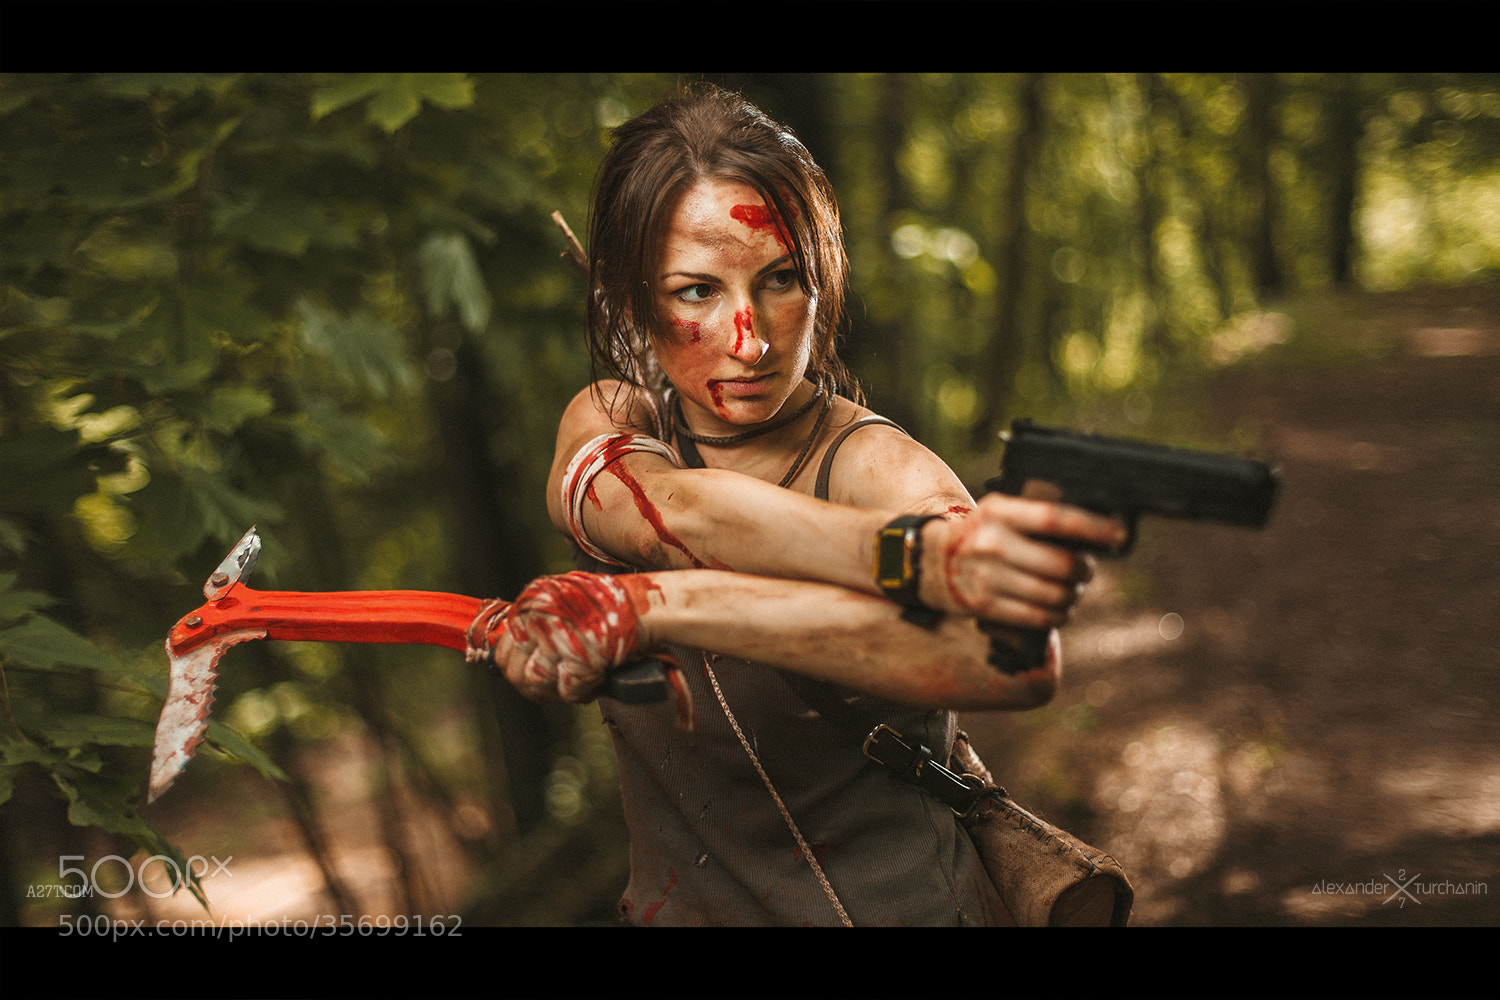 Photograph Tomb Raider: Reborn by Alexander Turchanin on 500px